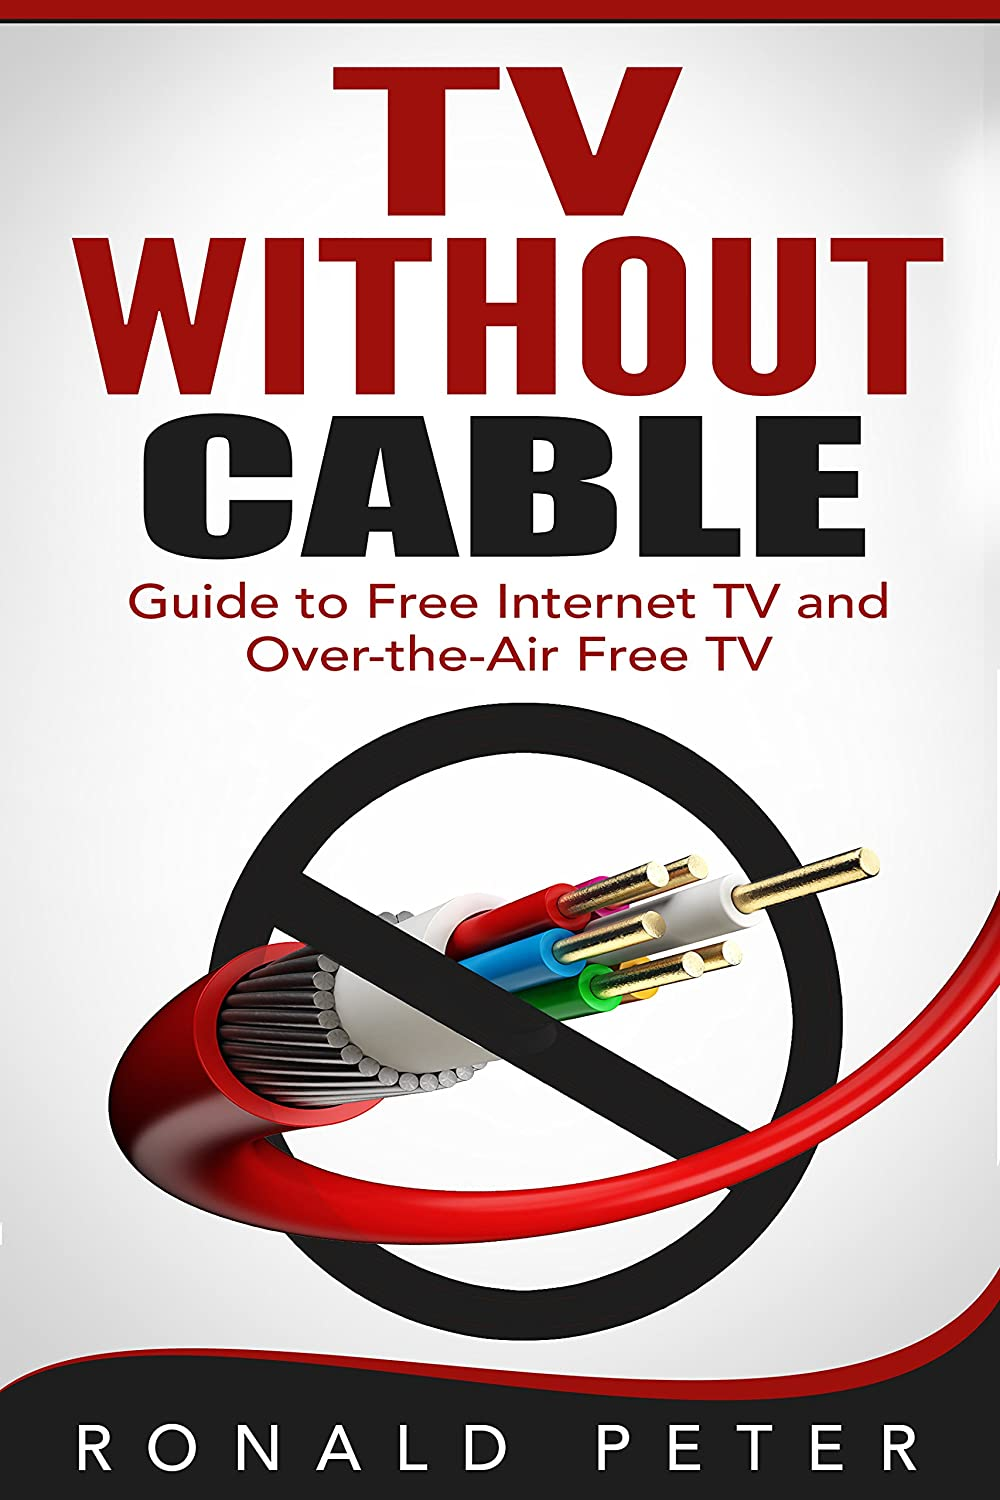 TV Without Cable: Guide to Free Internet TV and Over-the-Air Free ...